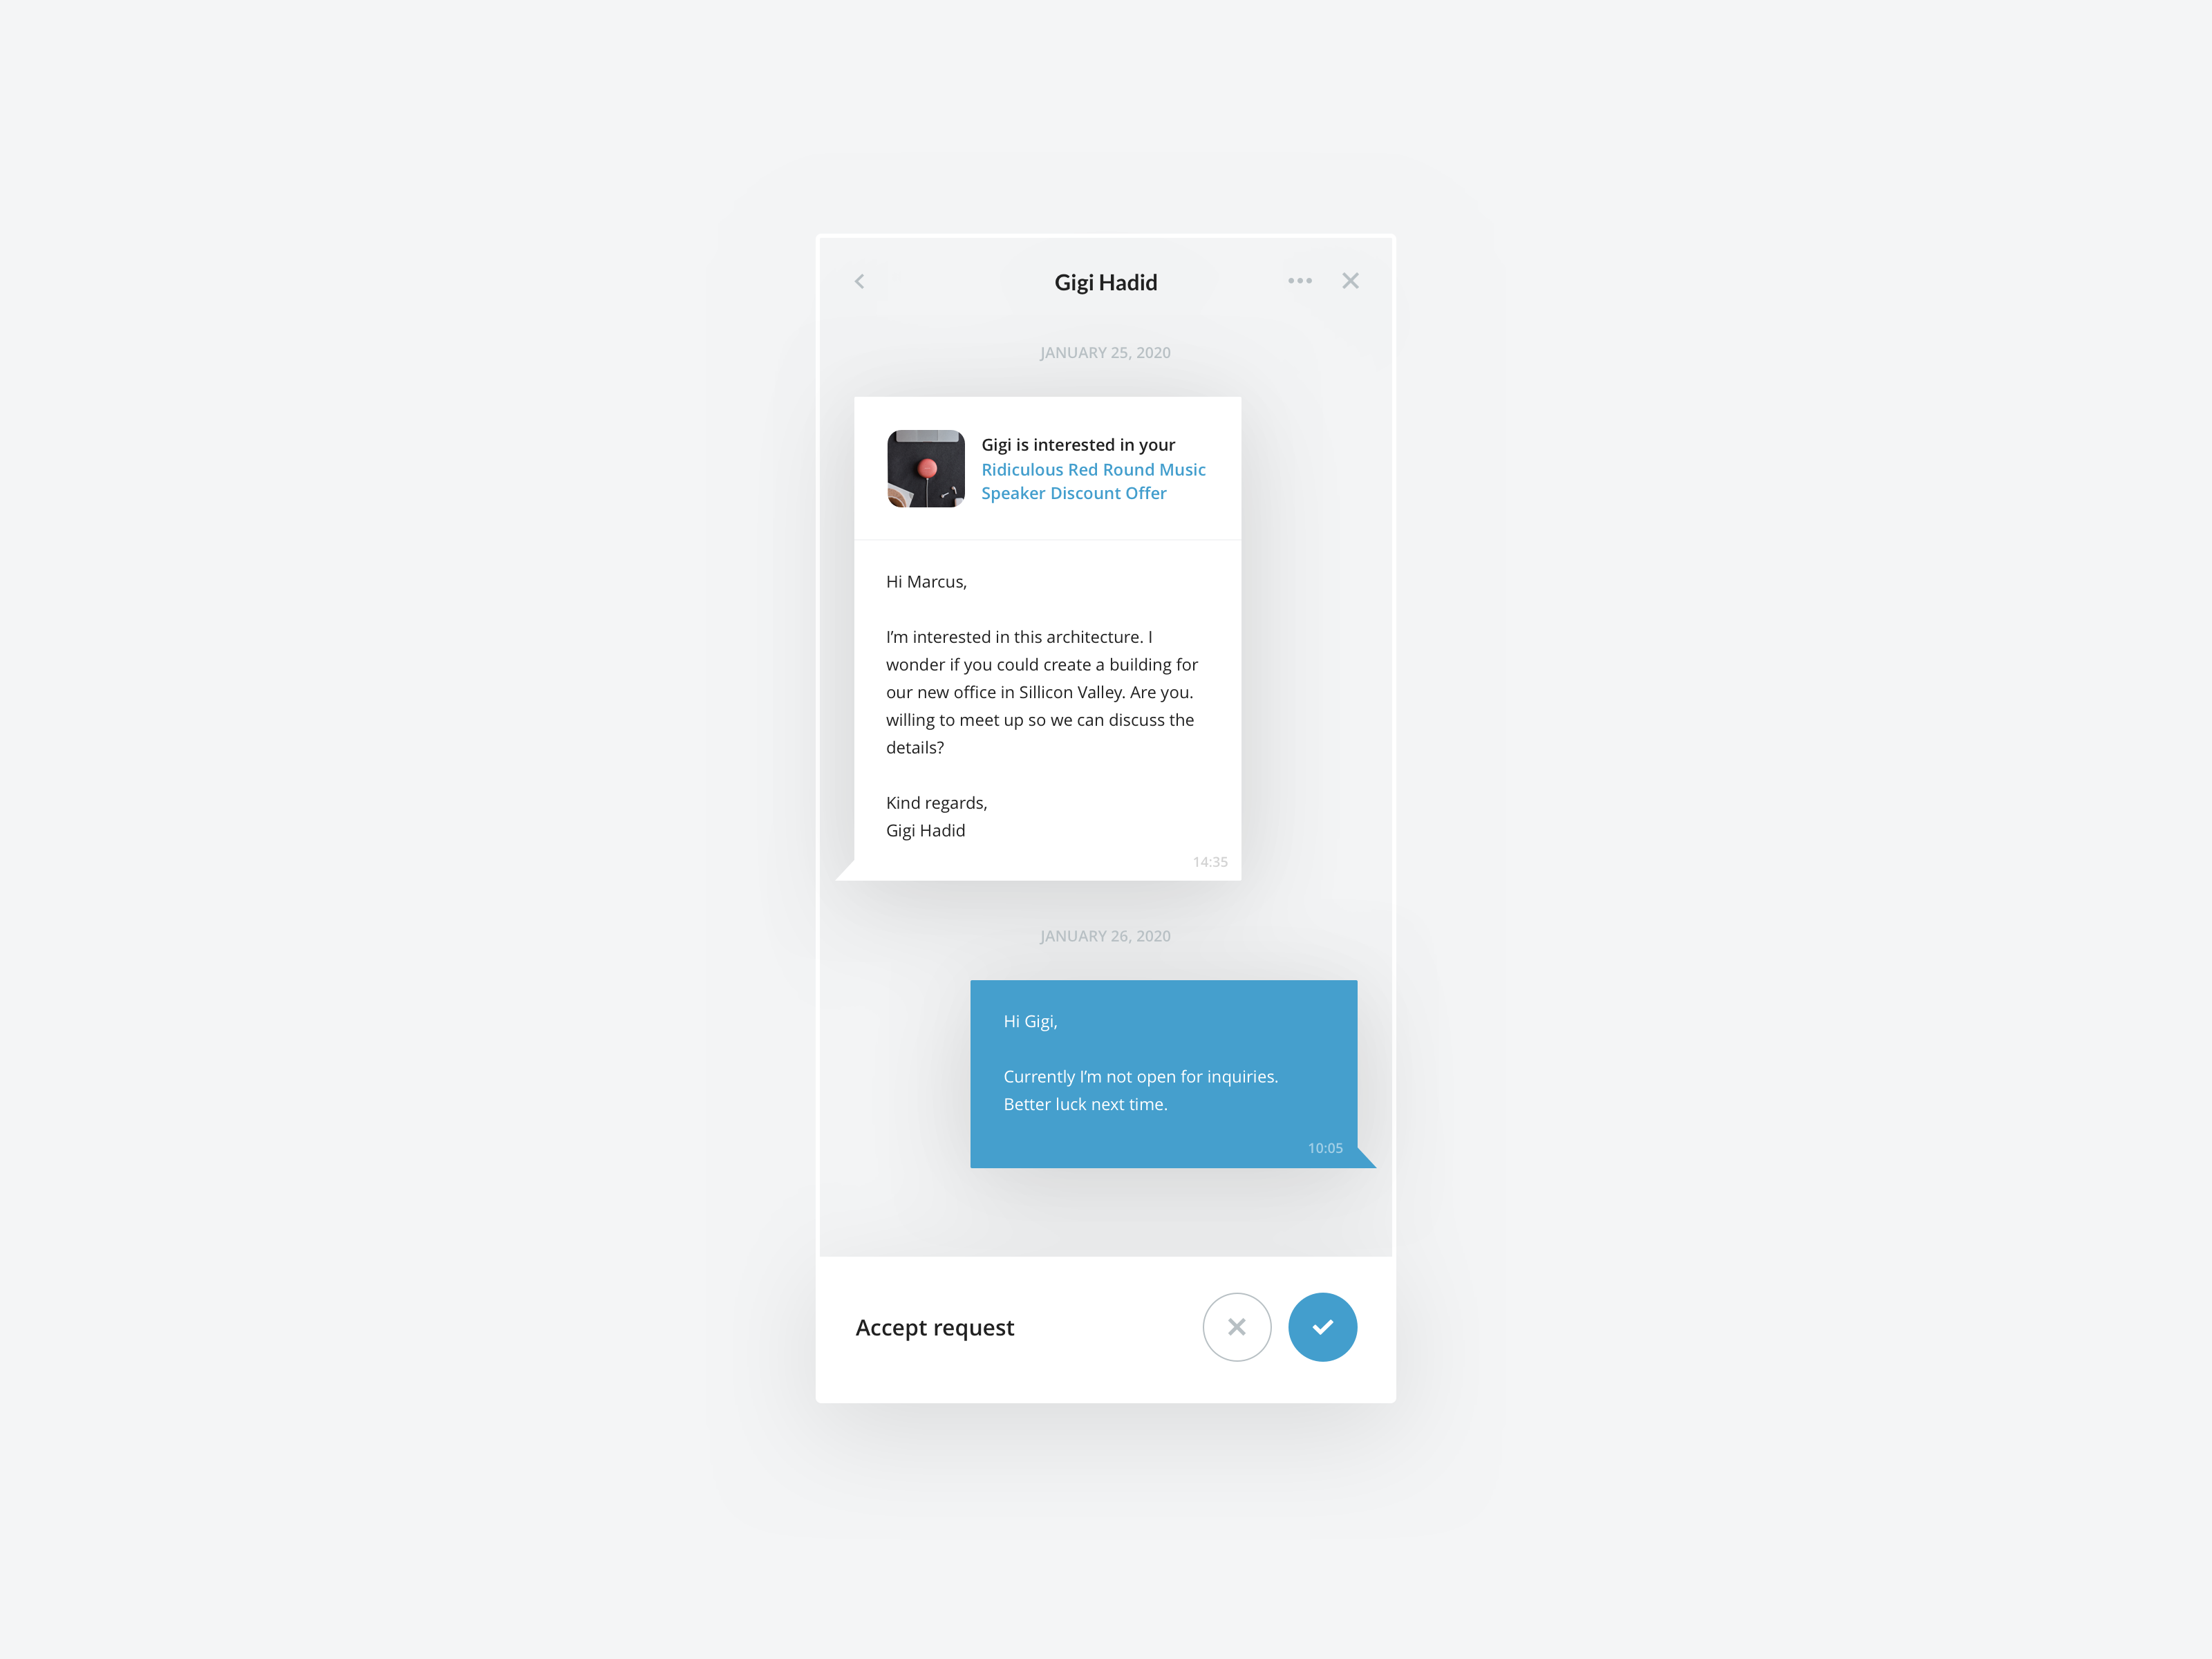 Mobile Selling App - Chat by Milan Houter on Dribbble